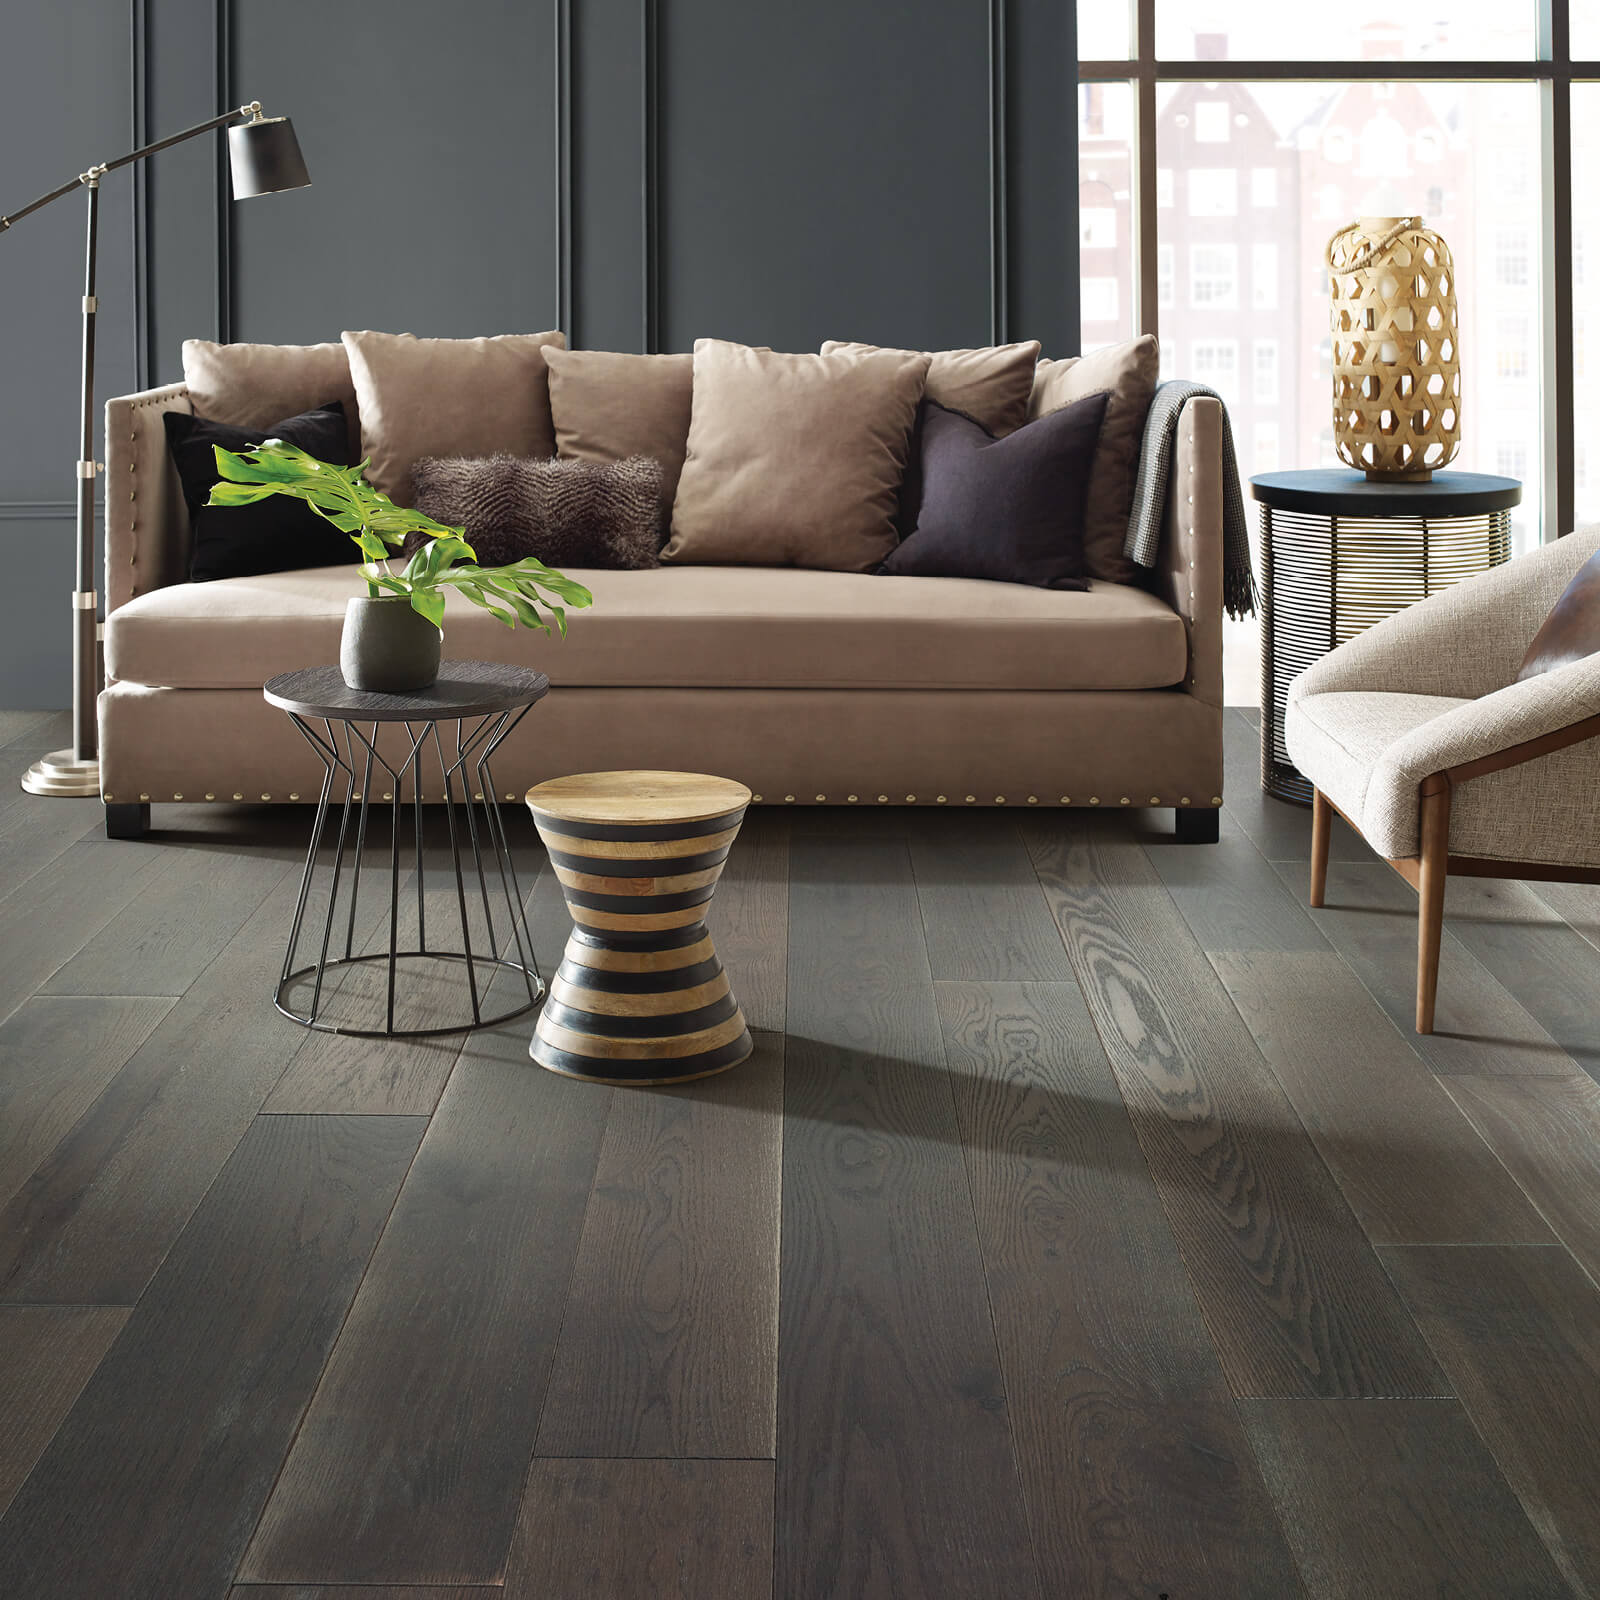 Living room Hardwood flooring | Shans Carpets And Fine Flooring Inc